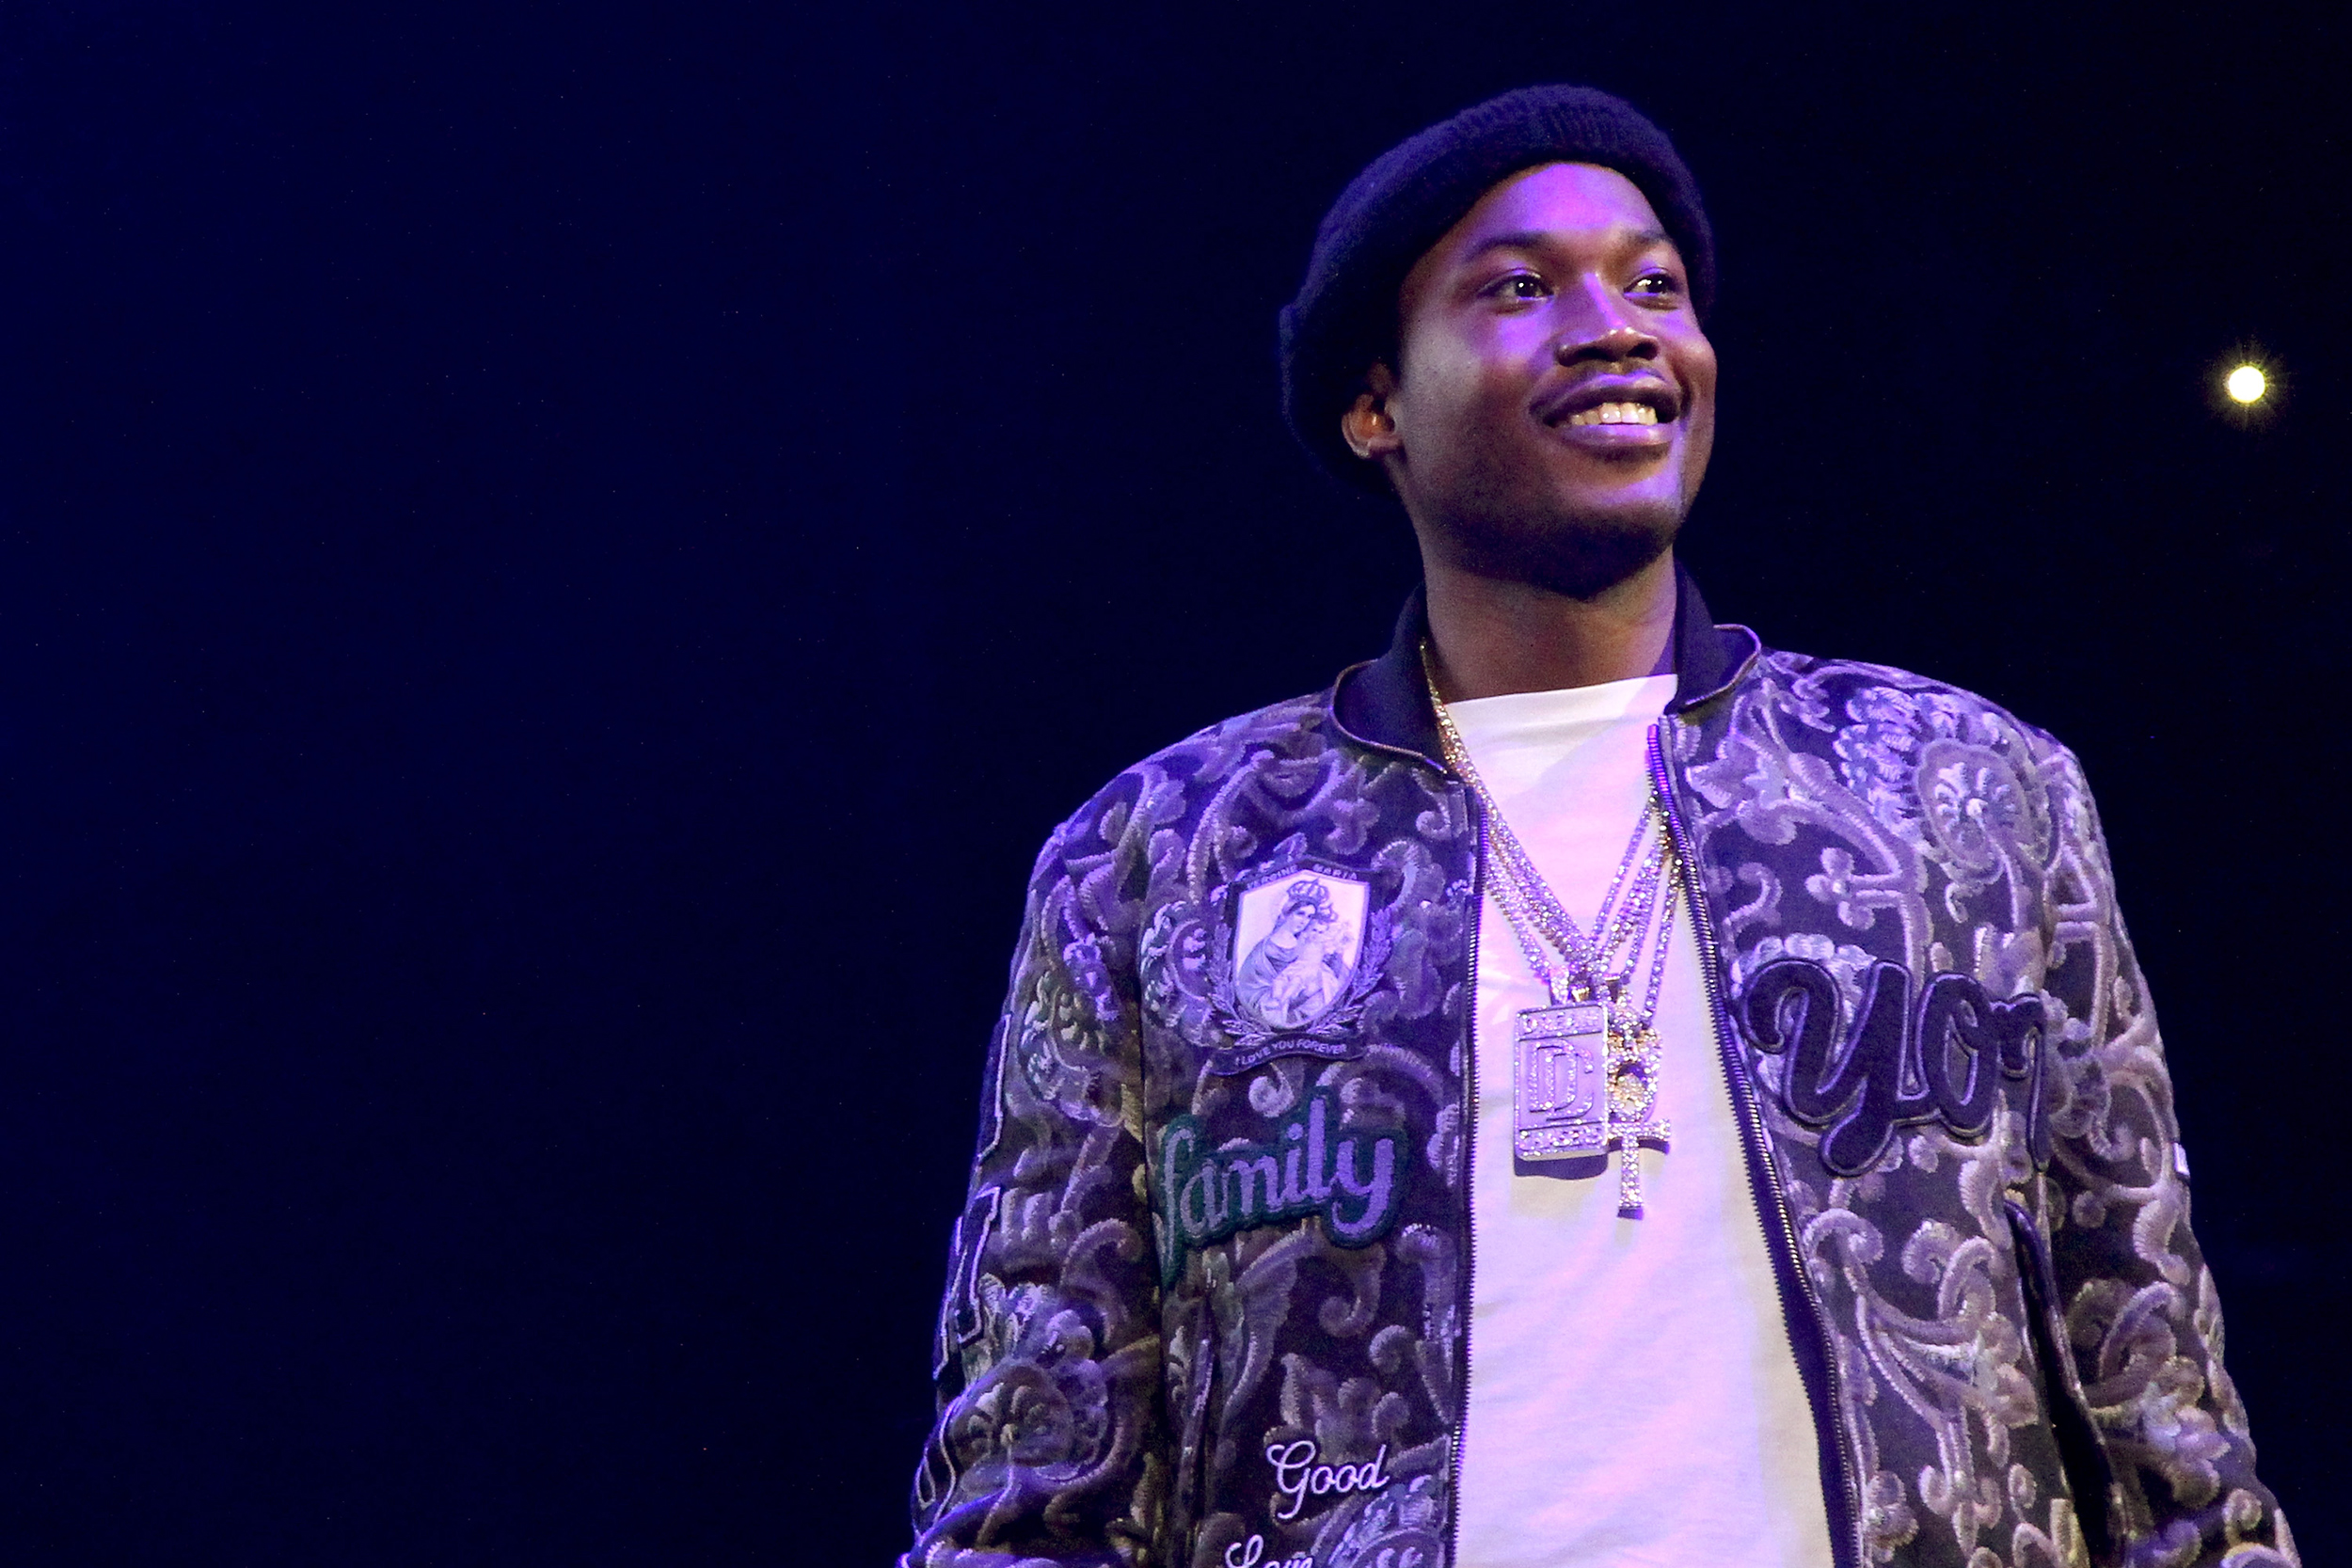 Celebrities-rally-behind-rapper-Meek-Mill-for-prison-release